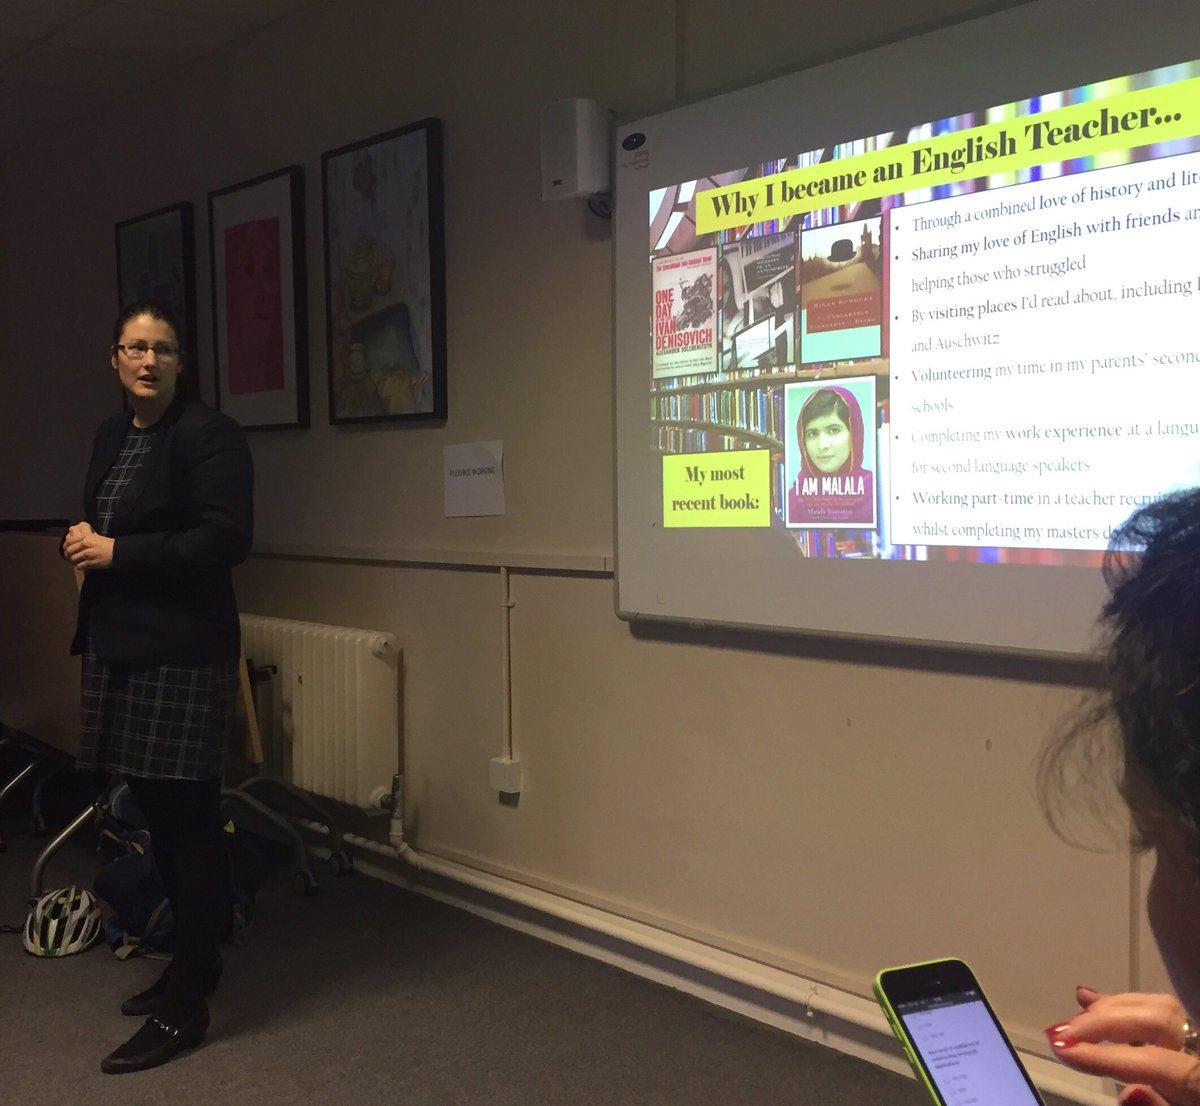 @RebeccaLearning shares her #leadership journey from #englishteacher to AP, being 10% braver #MTPTproject #WomenEd <br>http://pic.twitter.com/1ieeZD3Qmw